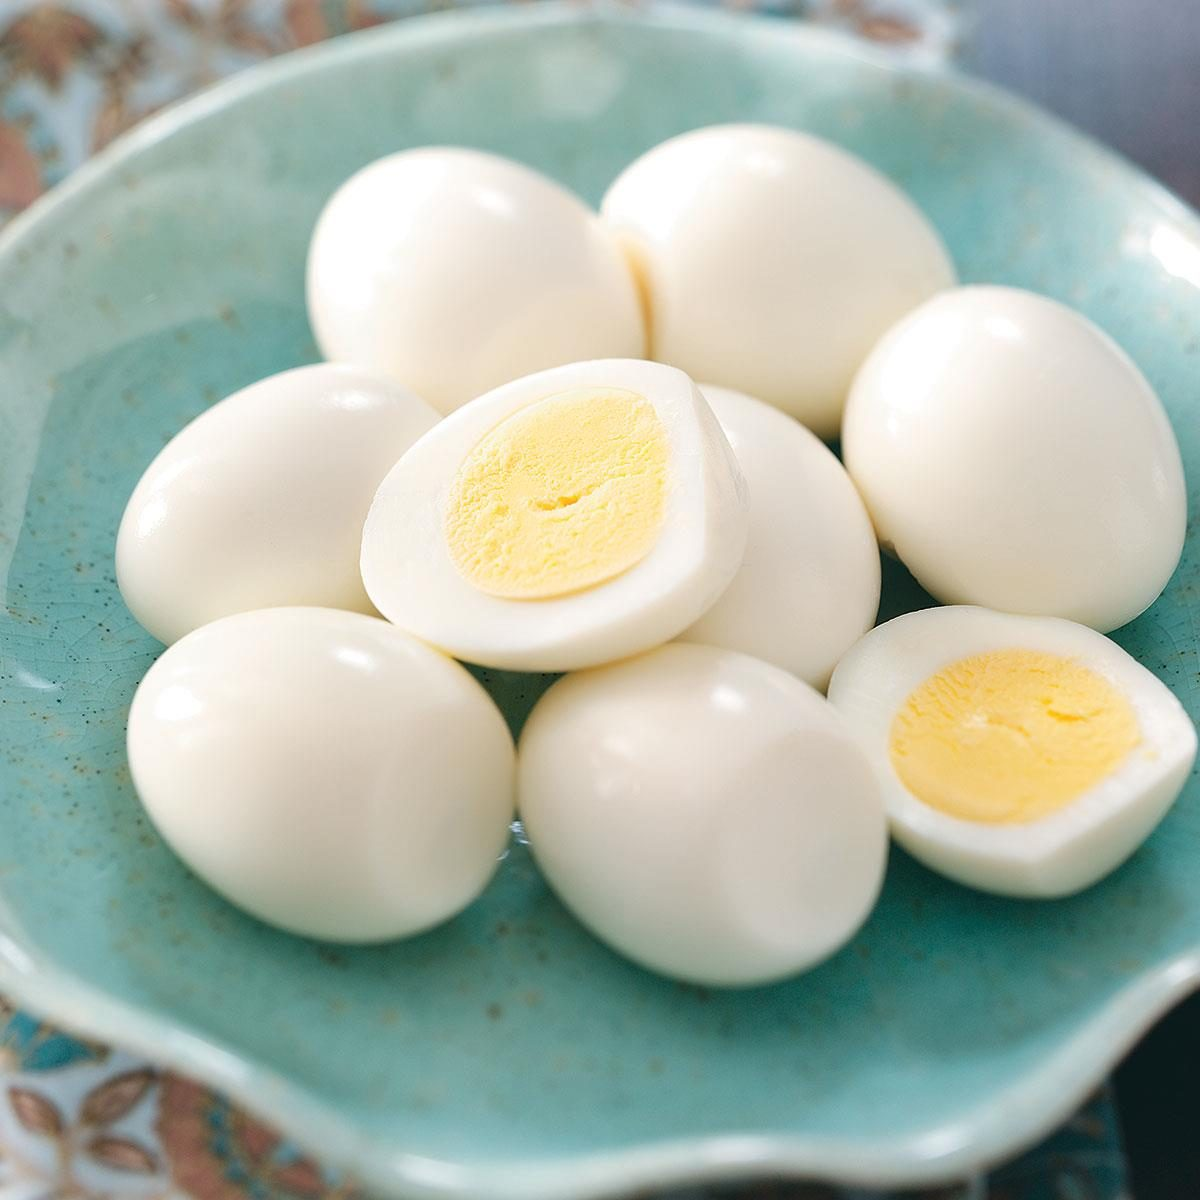 Taste Of Home How To Cook An Egg Recipes